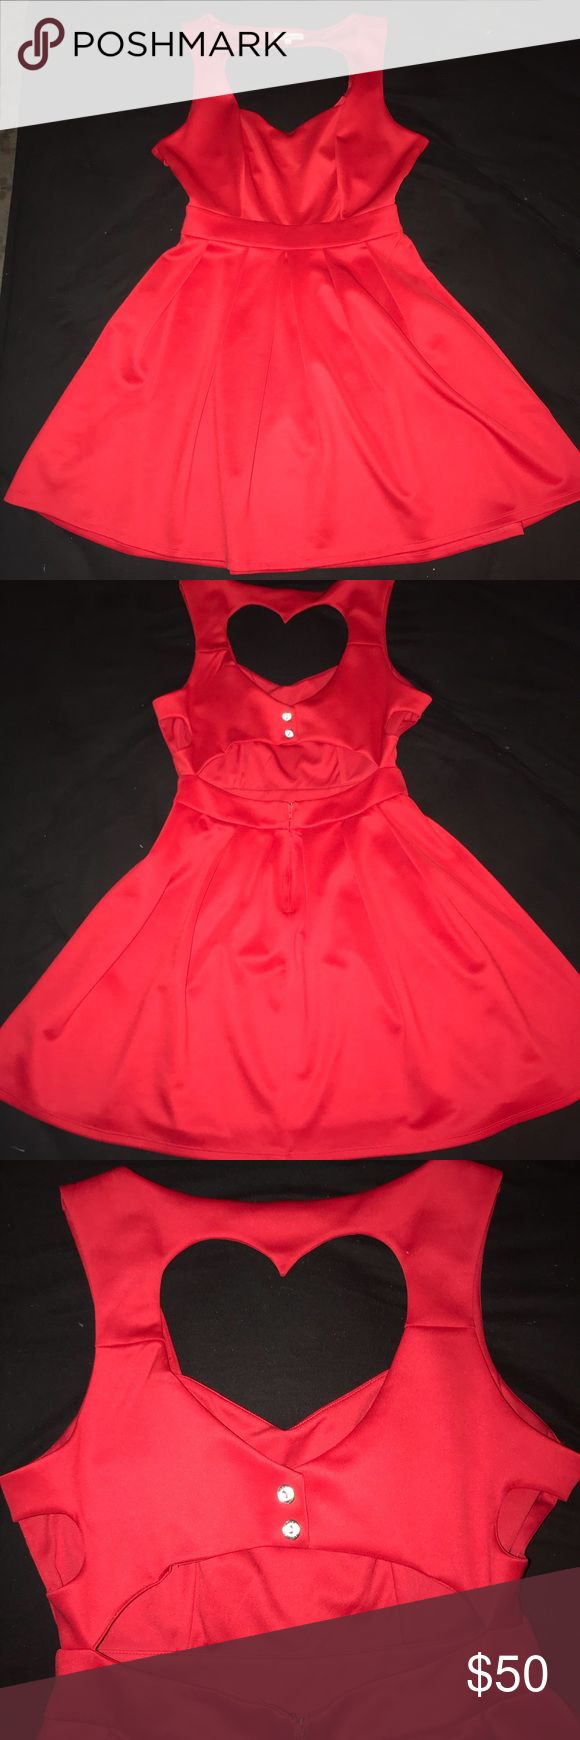 Red cutouts heart back dress Beautiful red dress that is fitted and at the waist is falls with nice pleating. There is a heart cutout on the back, another cutout under the heart, as well as cutouts on the sides. A must have! Charlotte Russe Dresses Midi